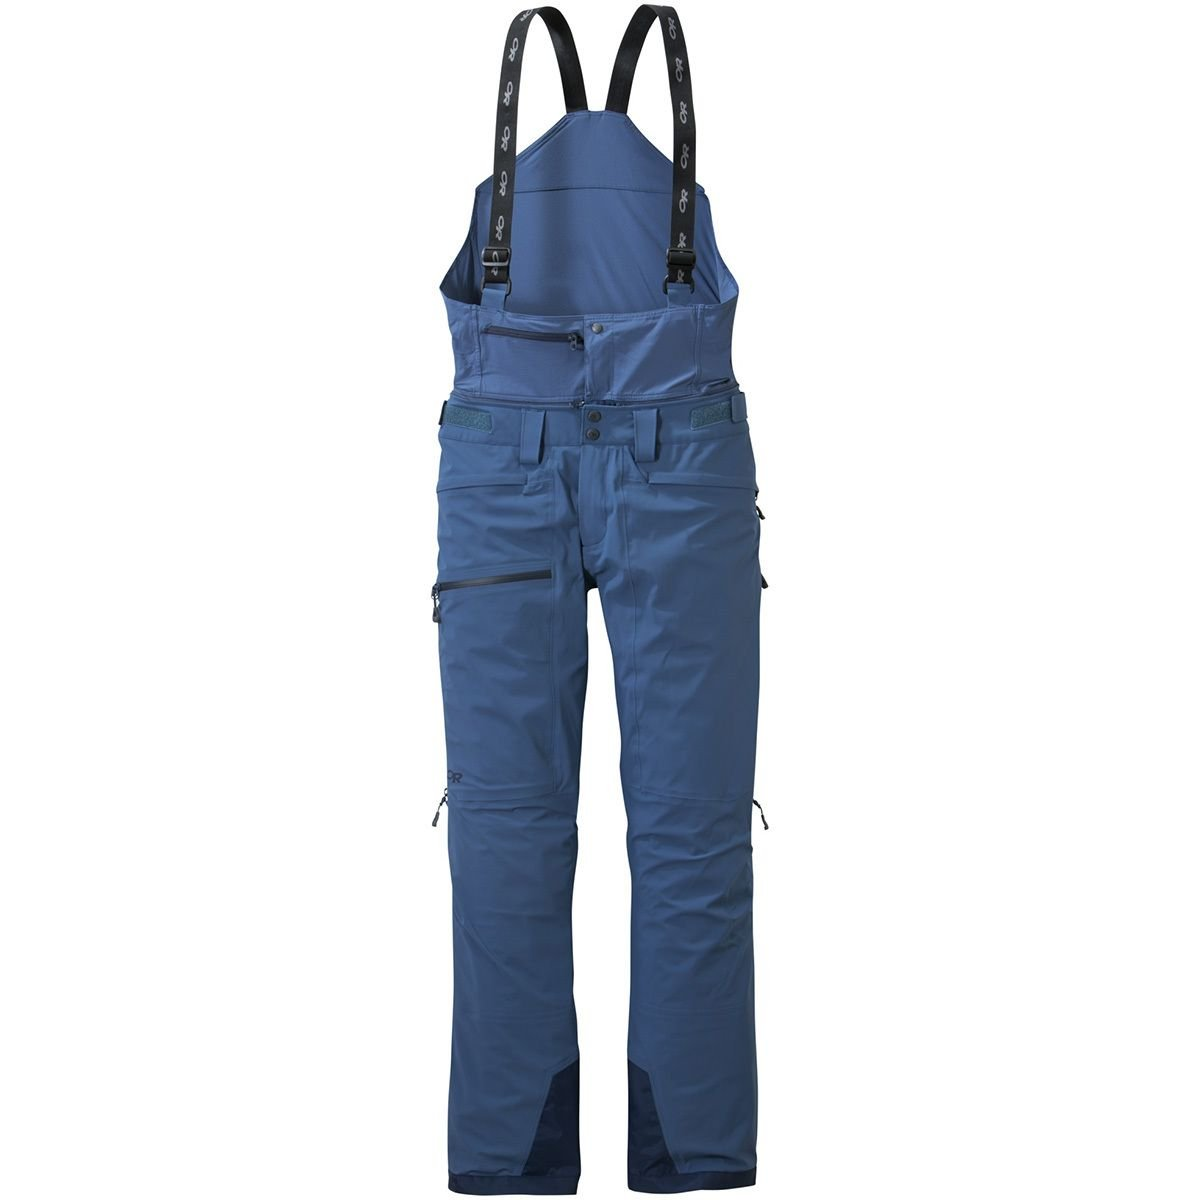 Outdoor Research Herren Skihose Men& 039;s Skyward Pants